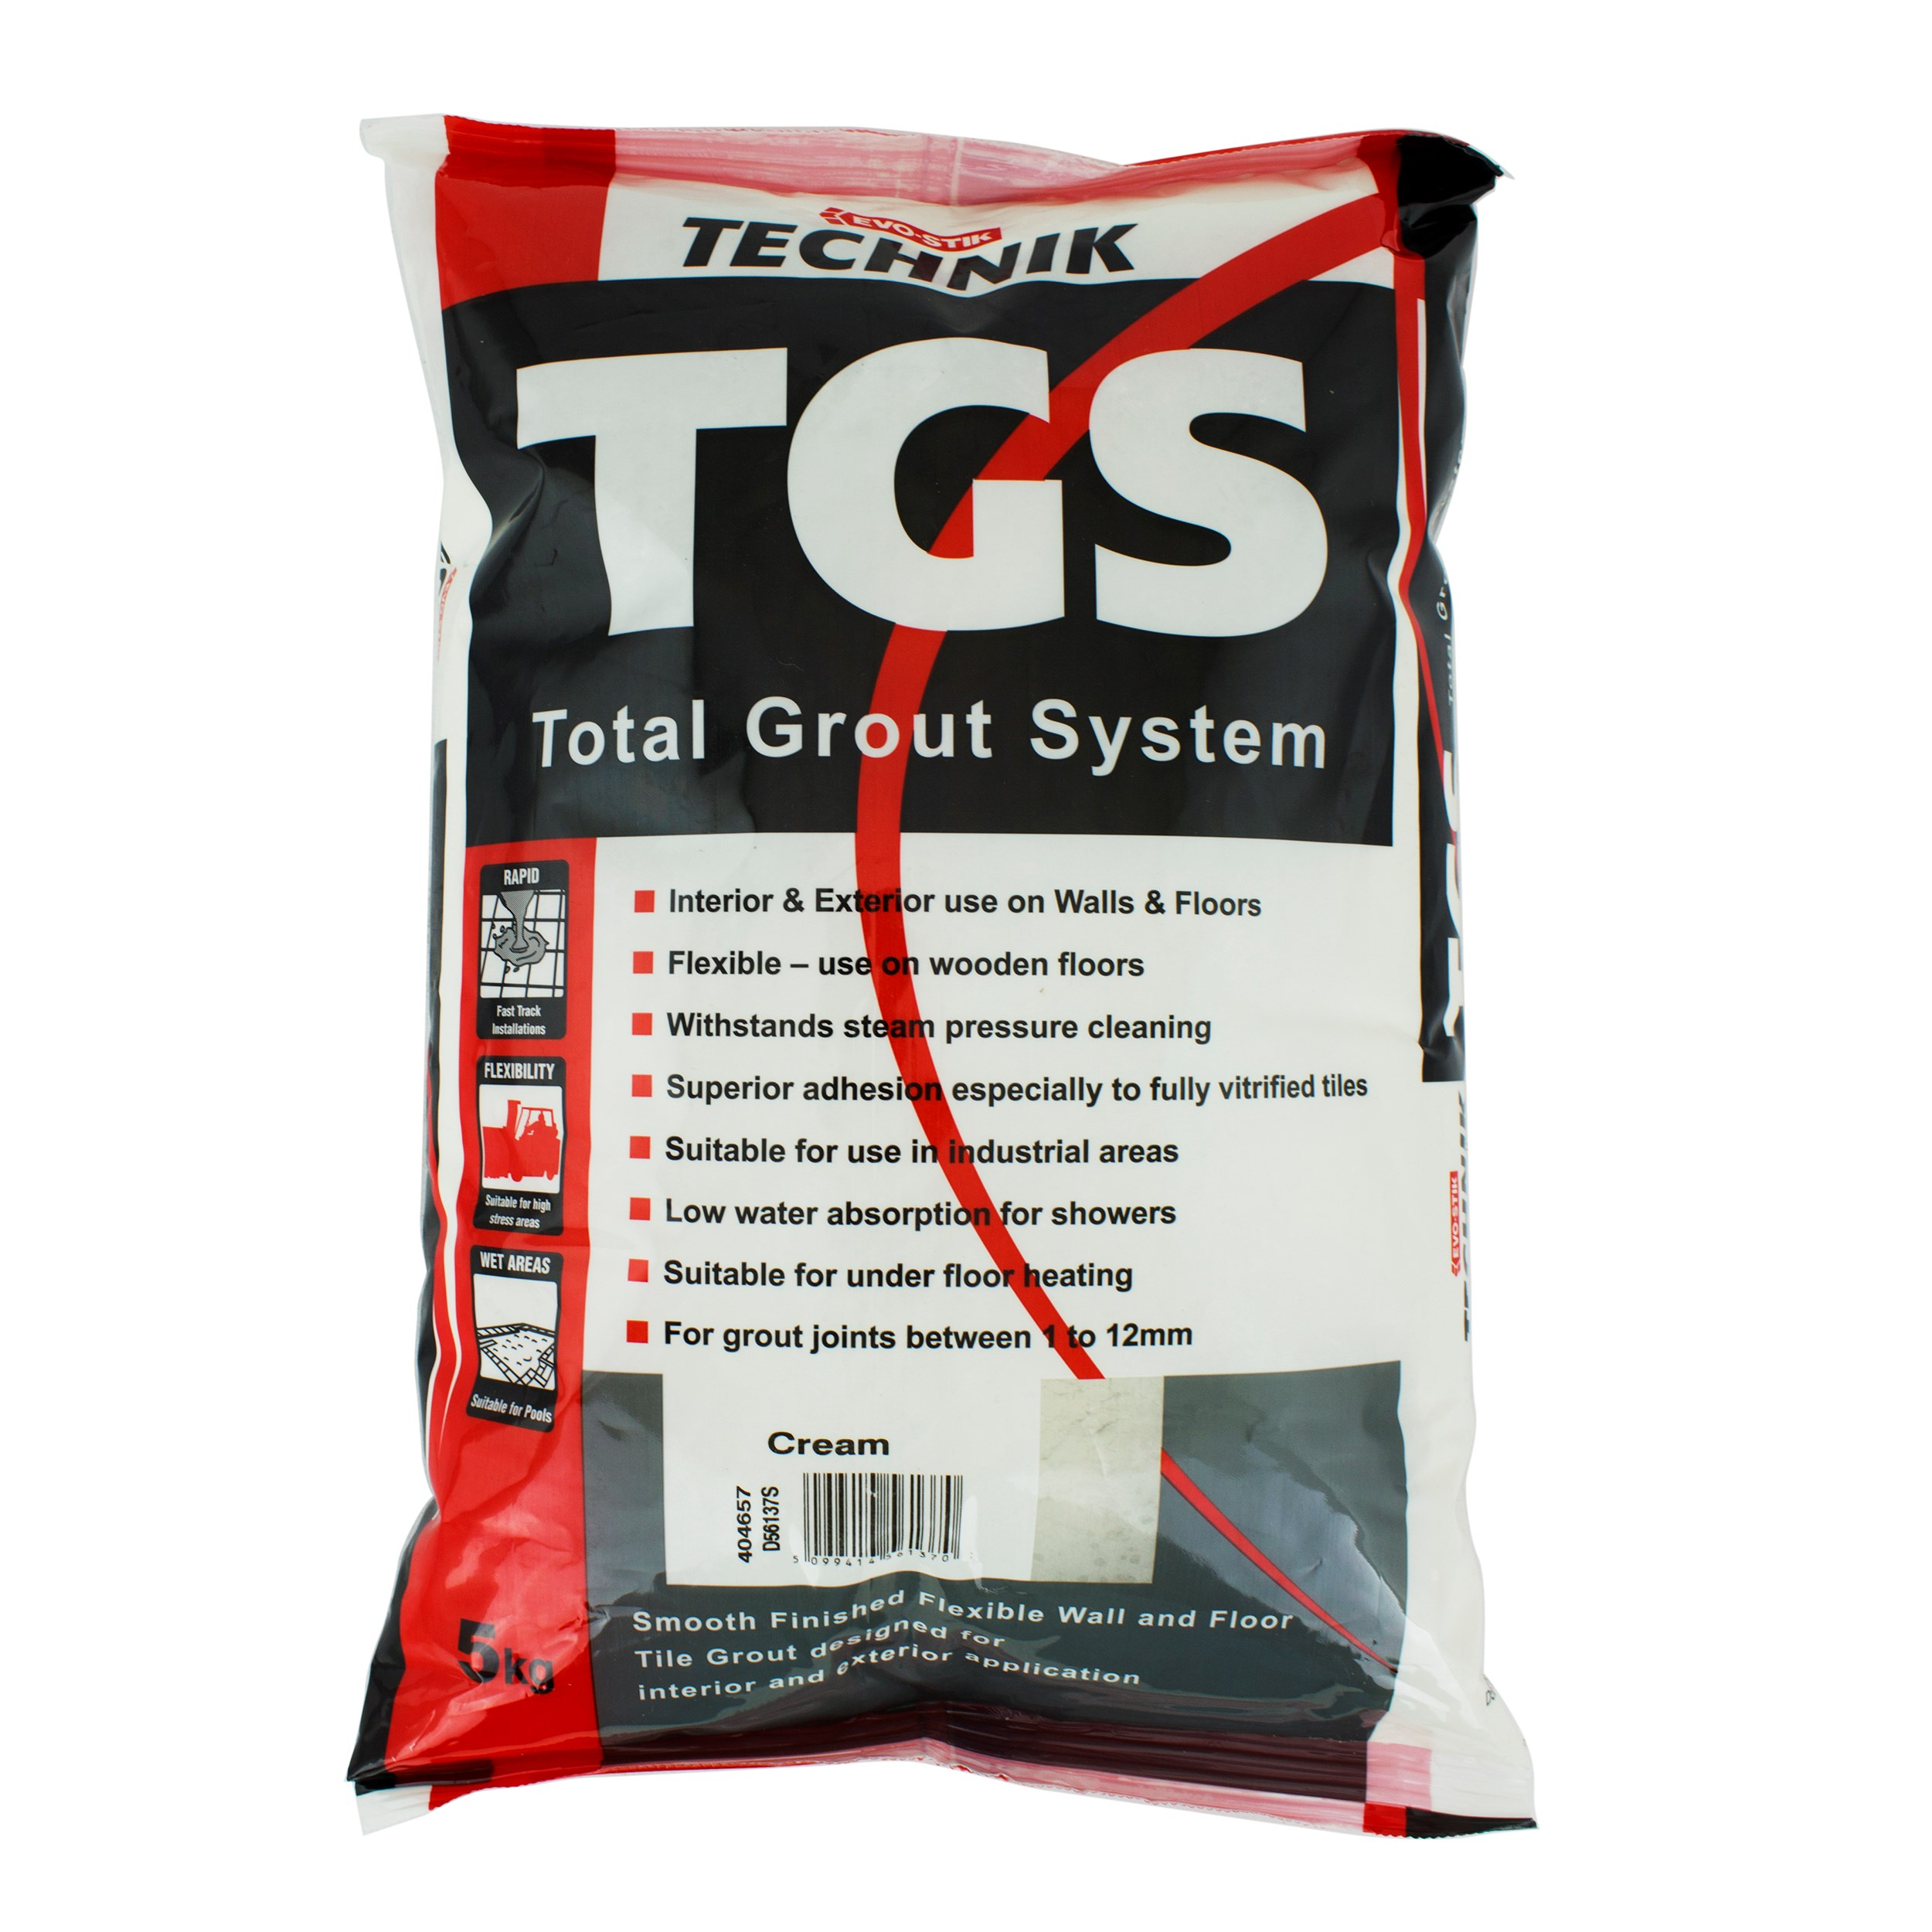 Evo stik tgs total grout system 5kg cream tile adhesives evo stik technik tgs total grout system 5kg cream dailygadgetfo Gallery